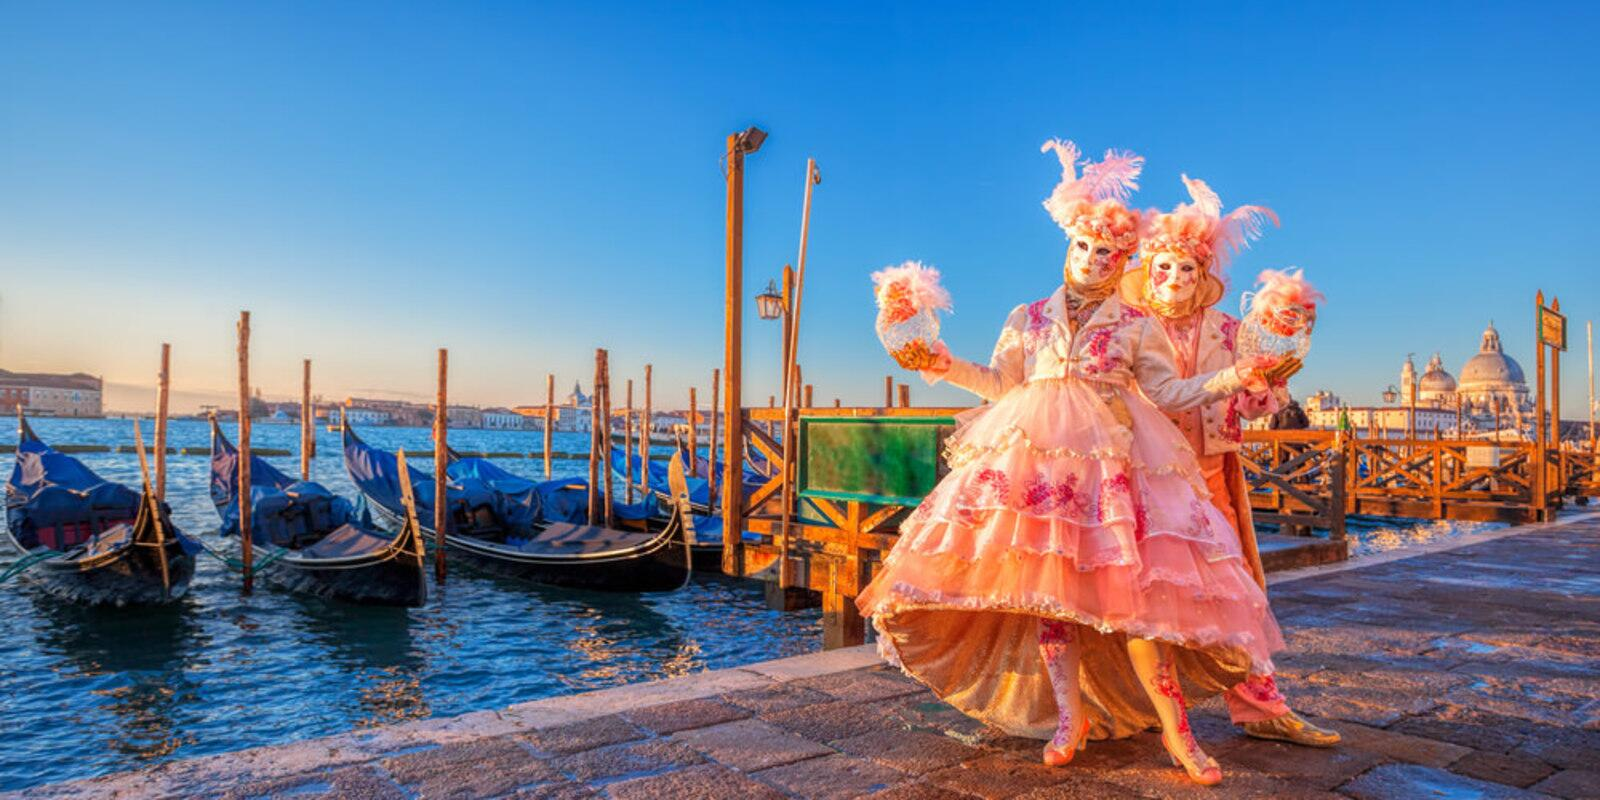 Venice - Carnival on a sailing boat